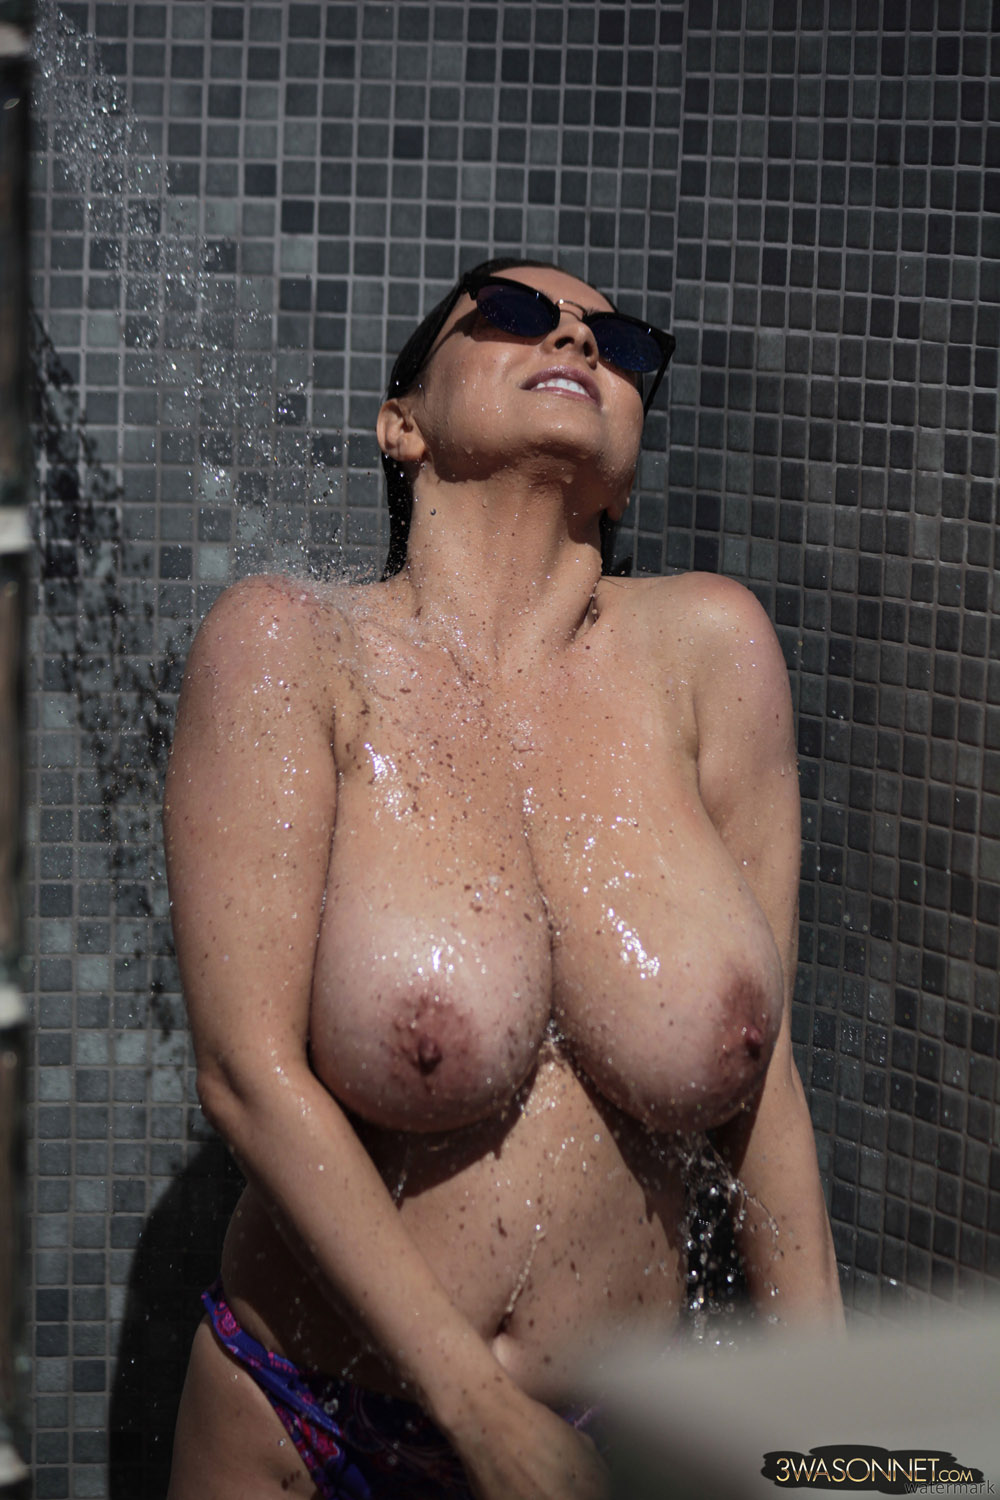 Rather grateful Nude outdoor shower think, that